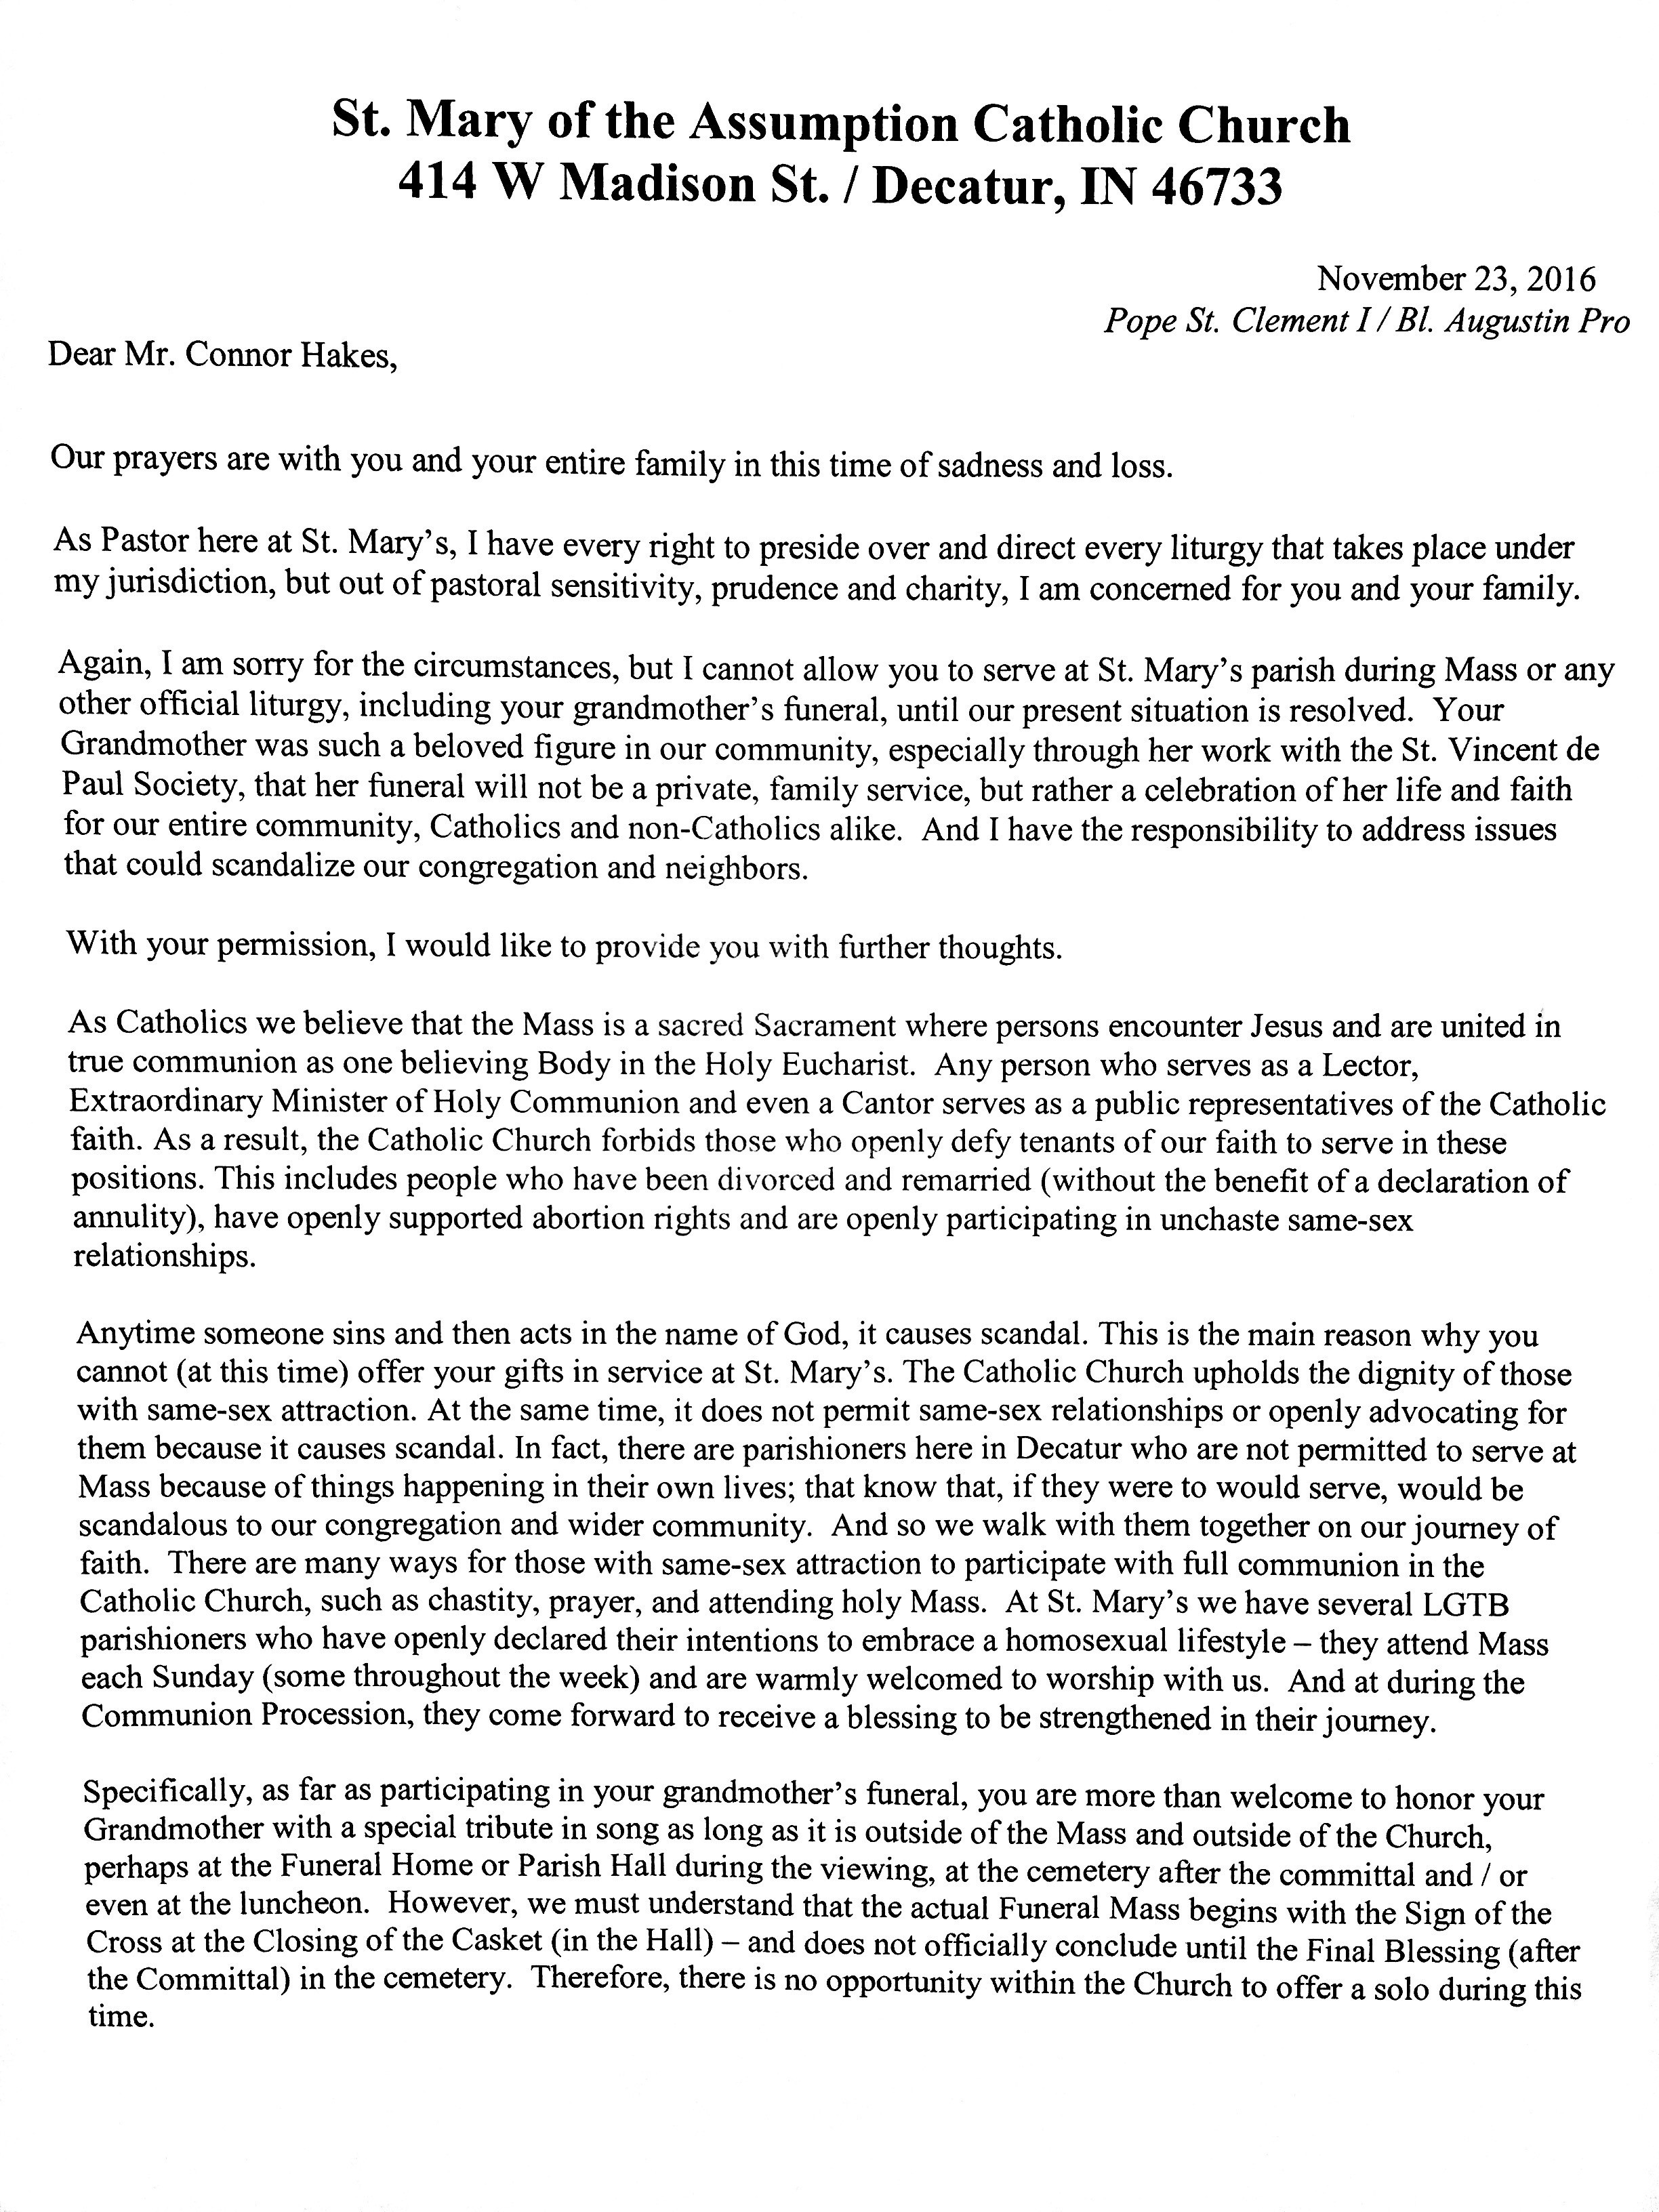 Letter to Connor Hakes saying he is not allowed to sing at his grandmother's funeral.